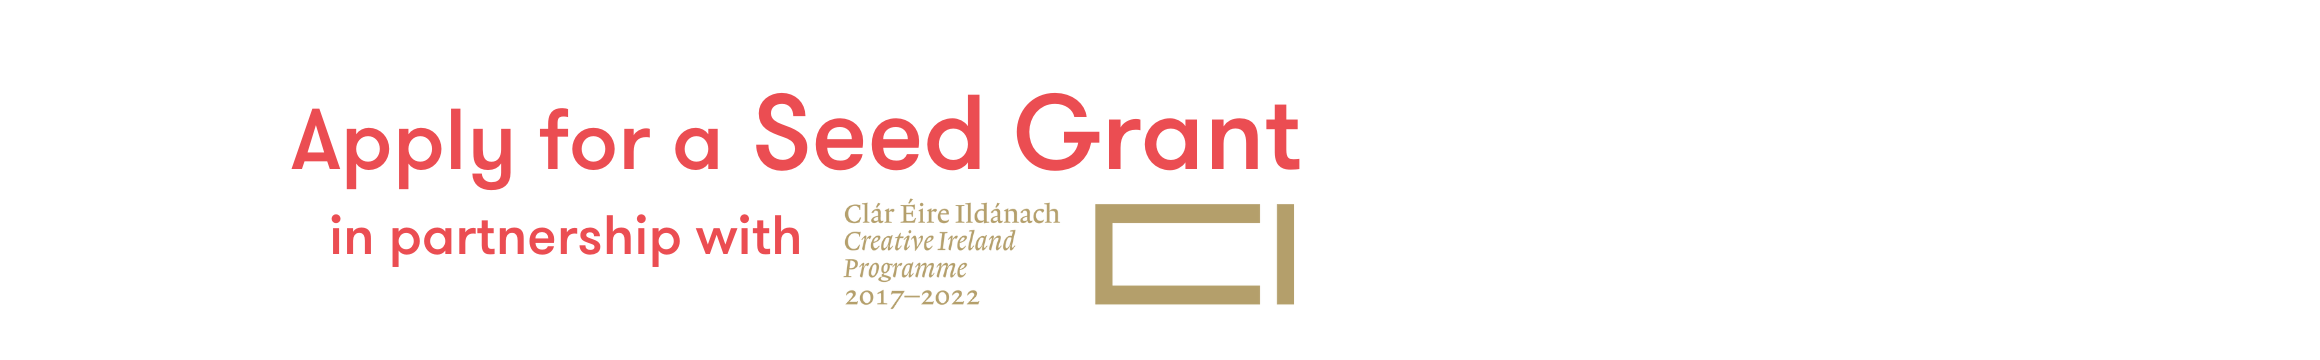 apply seed grant 2022